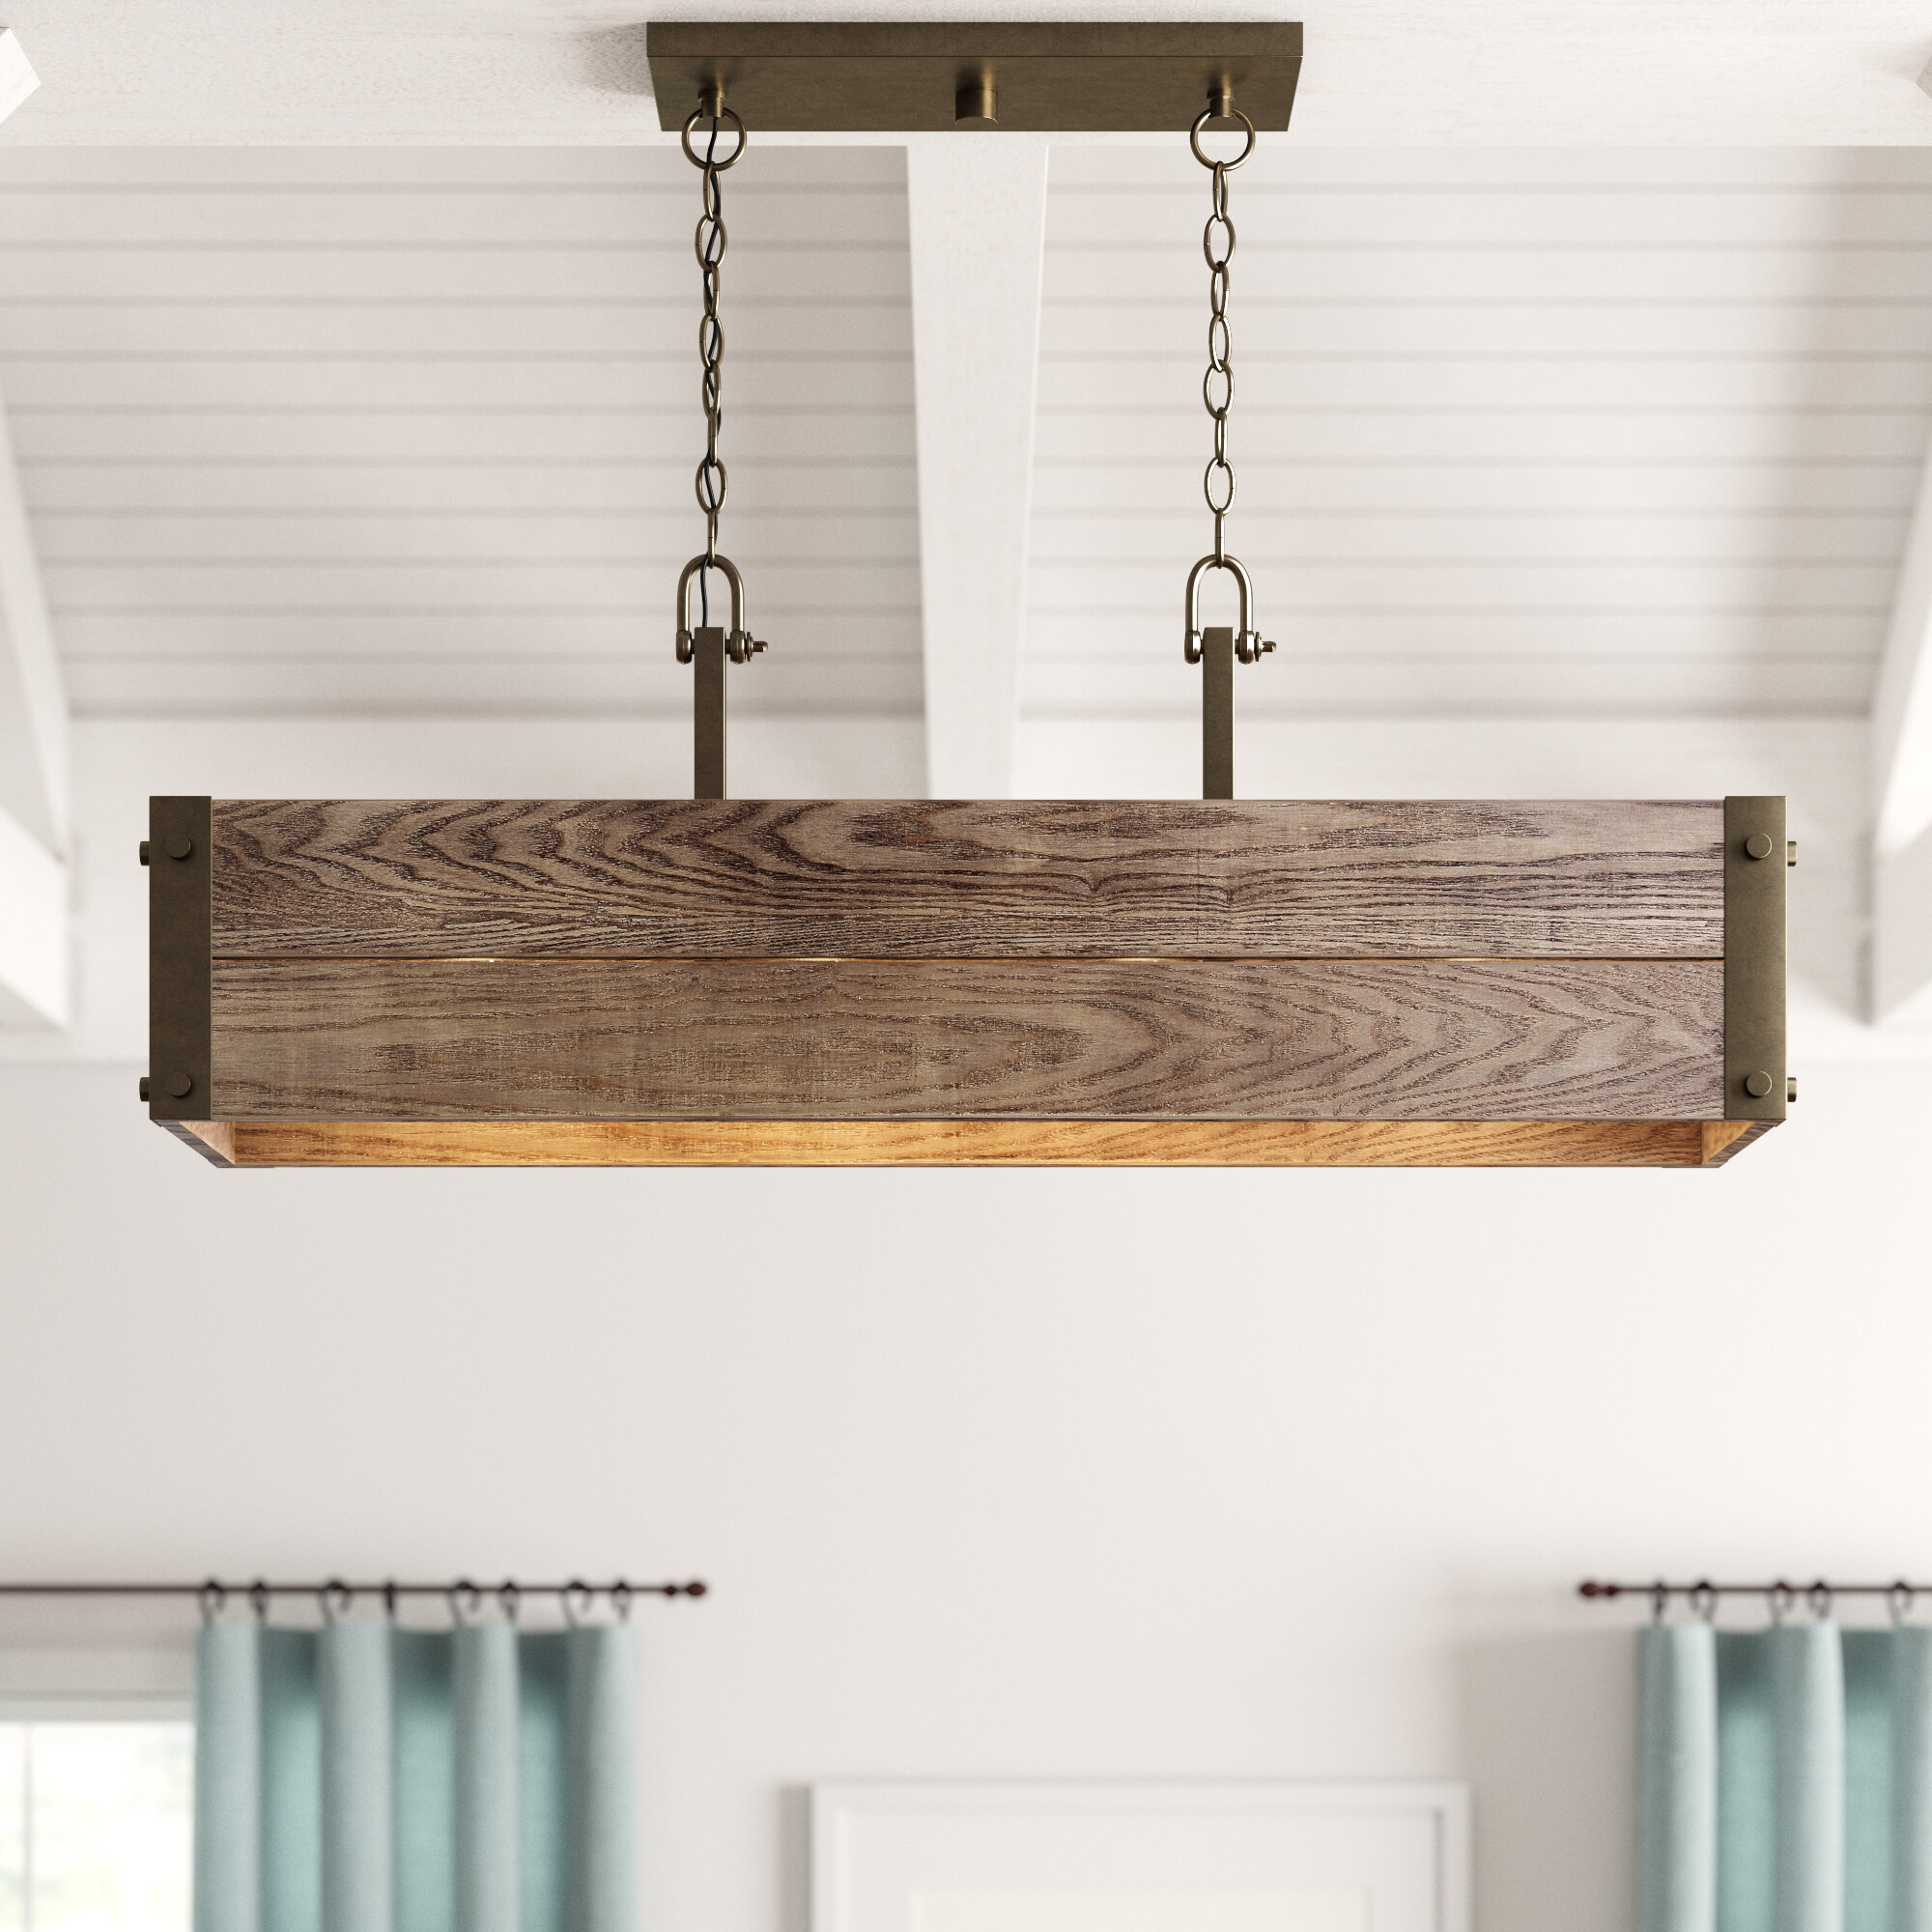 Cathey 4-Light Kitchen Island Linear Pendant inside Cinchring 4-Light Kitchen Island Linear Pendants (Image 7 of 30)